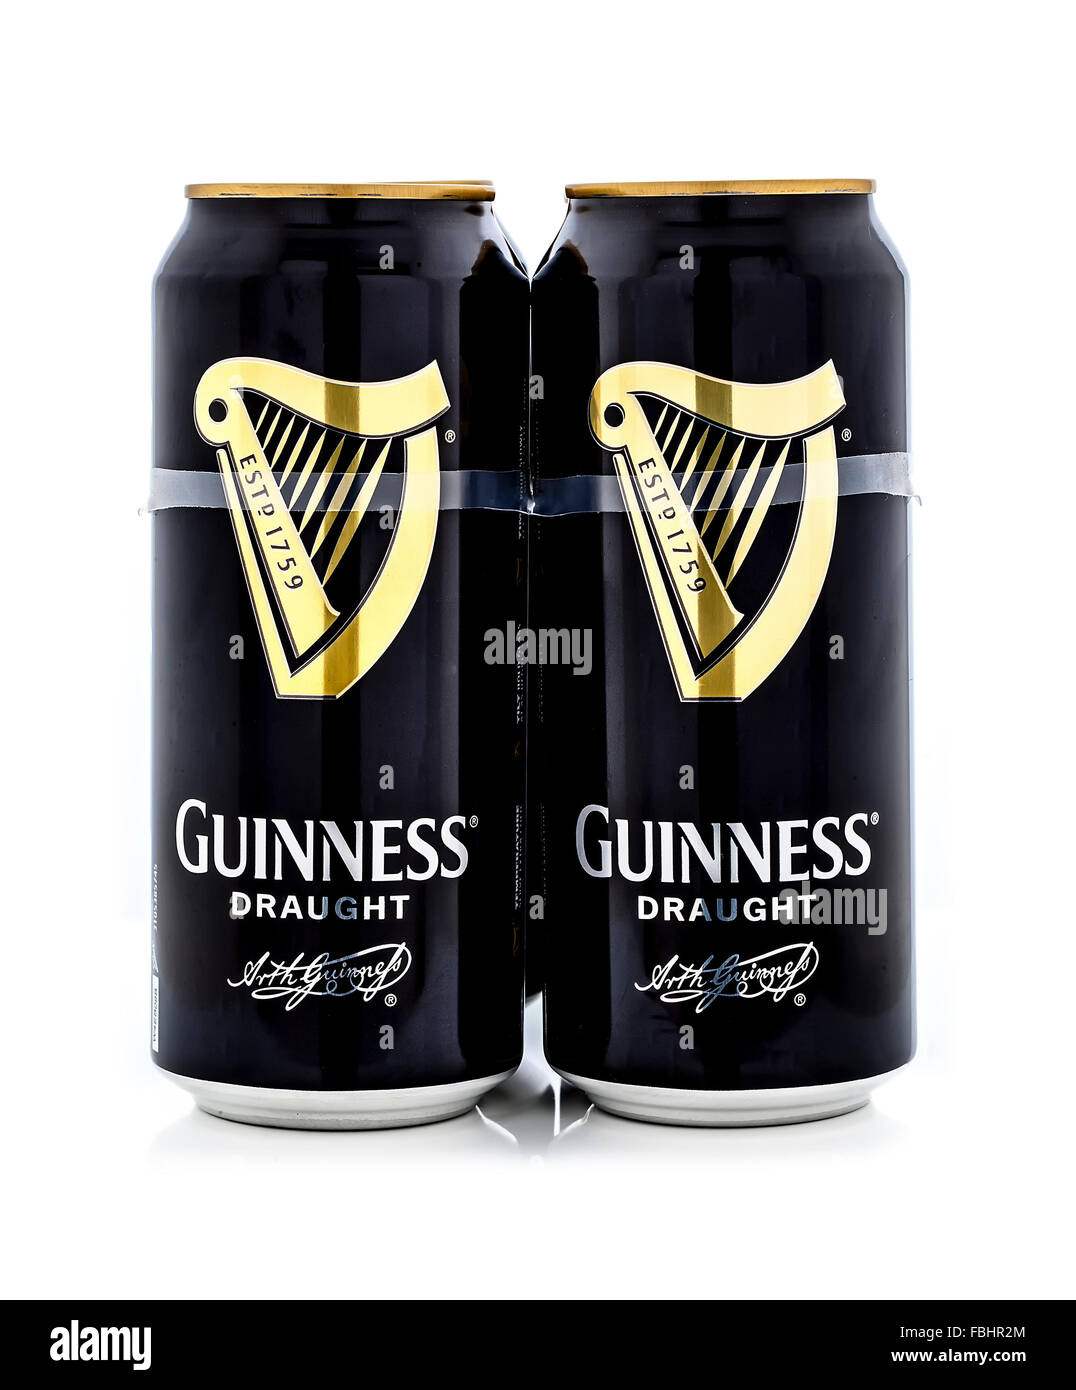 Four Pack of Guinness, the popular Irish beer on a white background - Stock Image